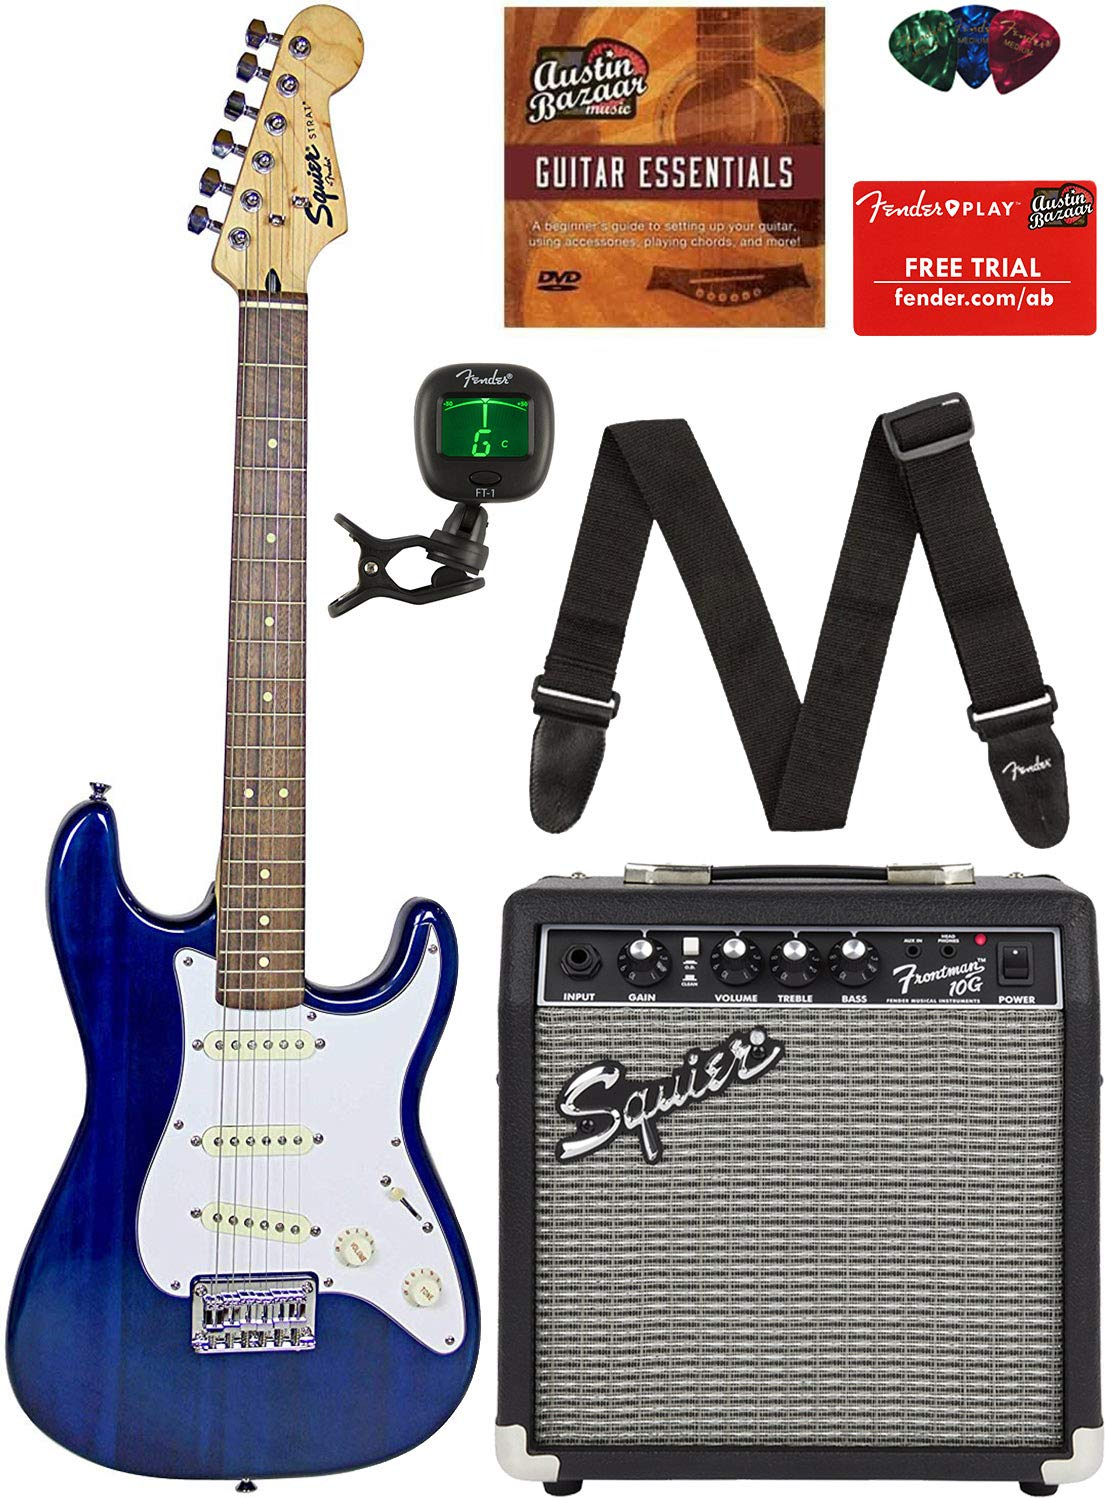 Squier by Fender Short Scale (24'') Stratocaster - Transparent Blue Bundle with Frontman 10G Amp, Cable, Tuner, Strap, Picks, Fender Play Online Lessons, and Austin Bazaar Instructional DVD by Fender